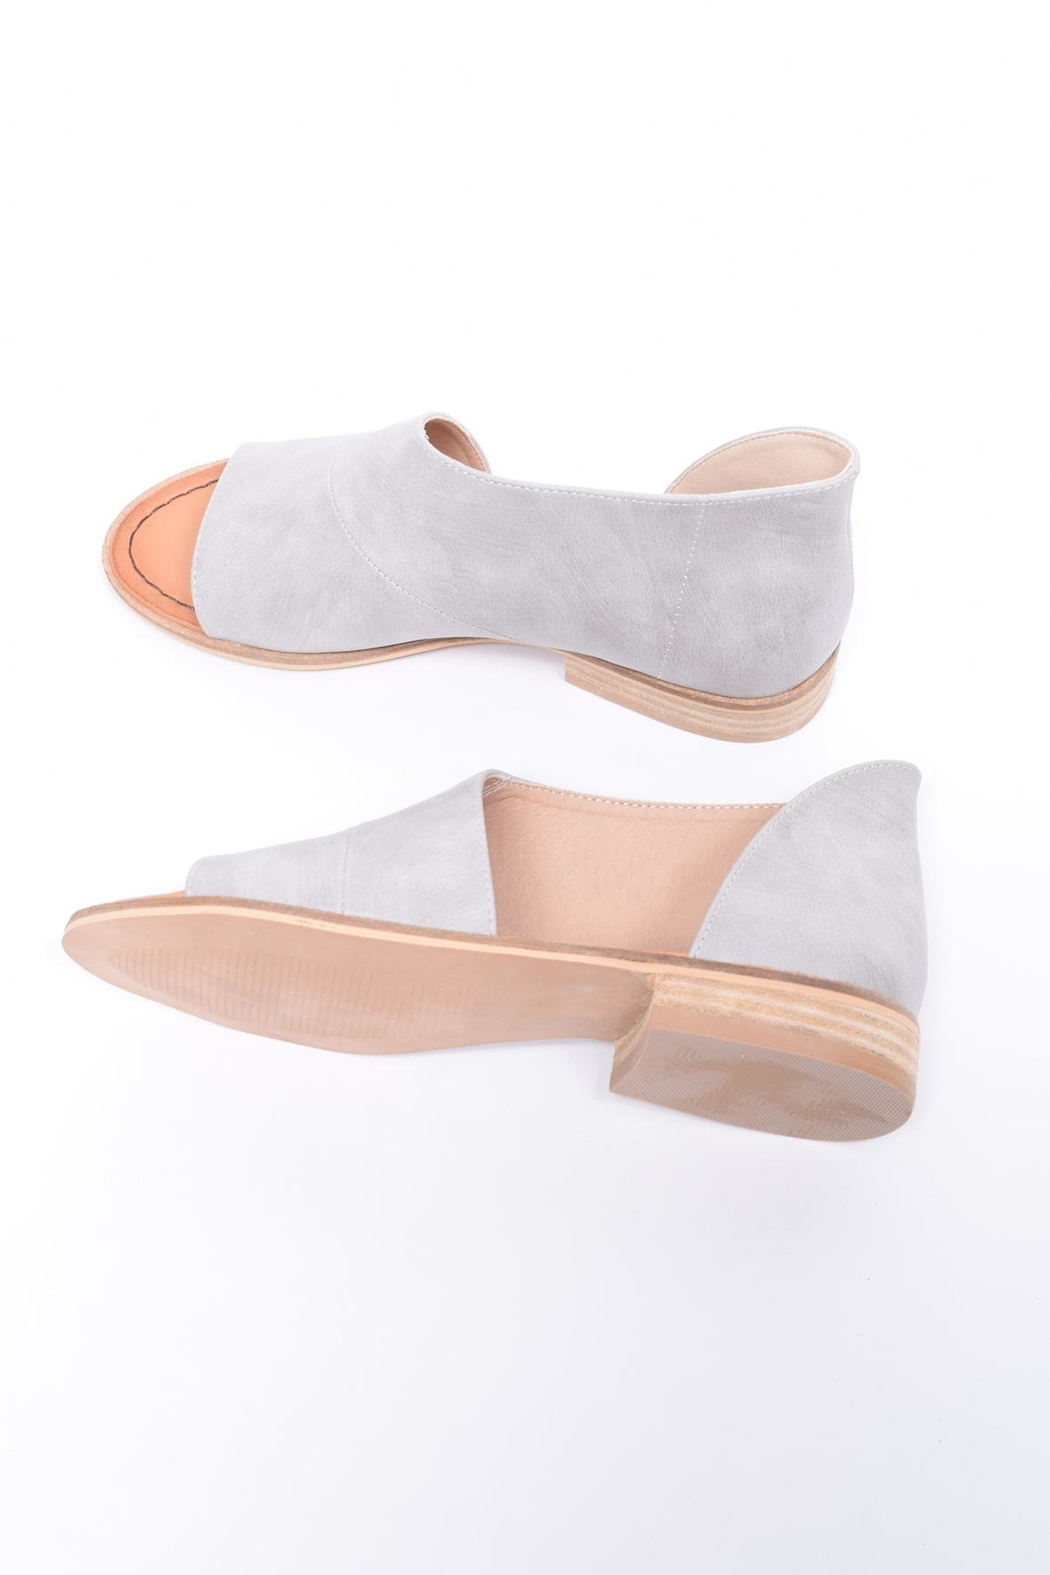 Unbranded Cutout Peep-Toe Flat - Side Cropped Image